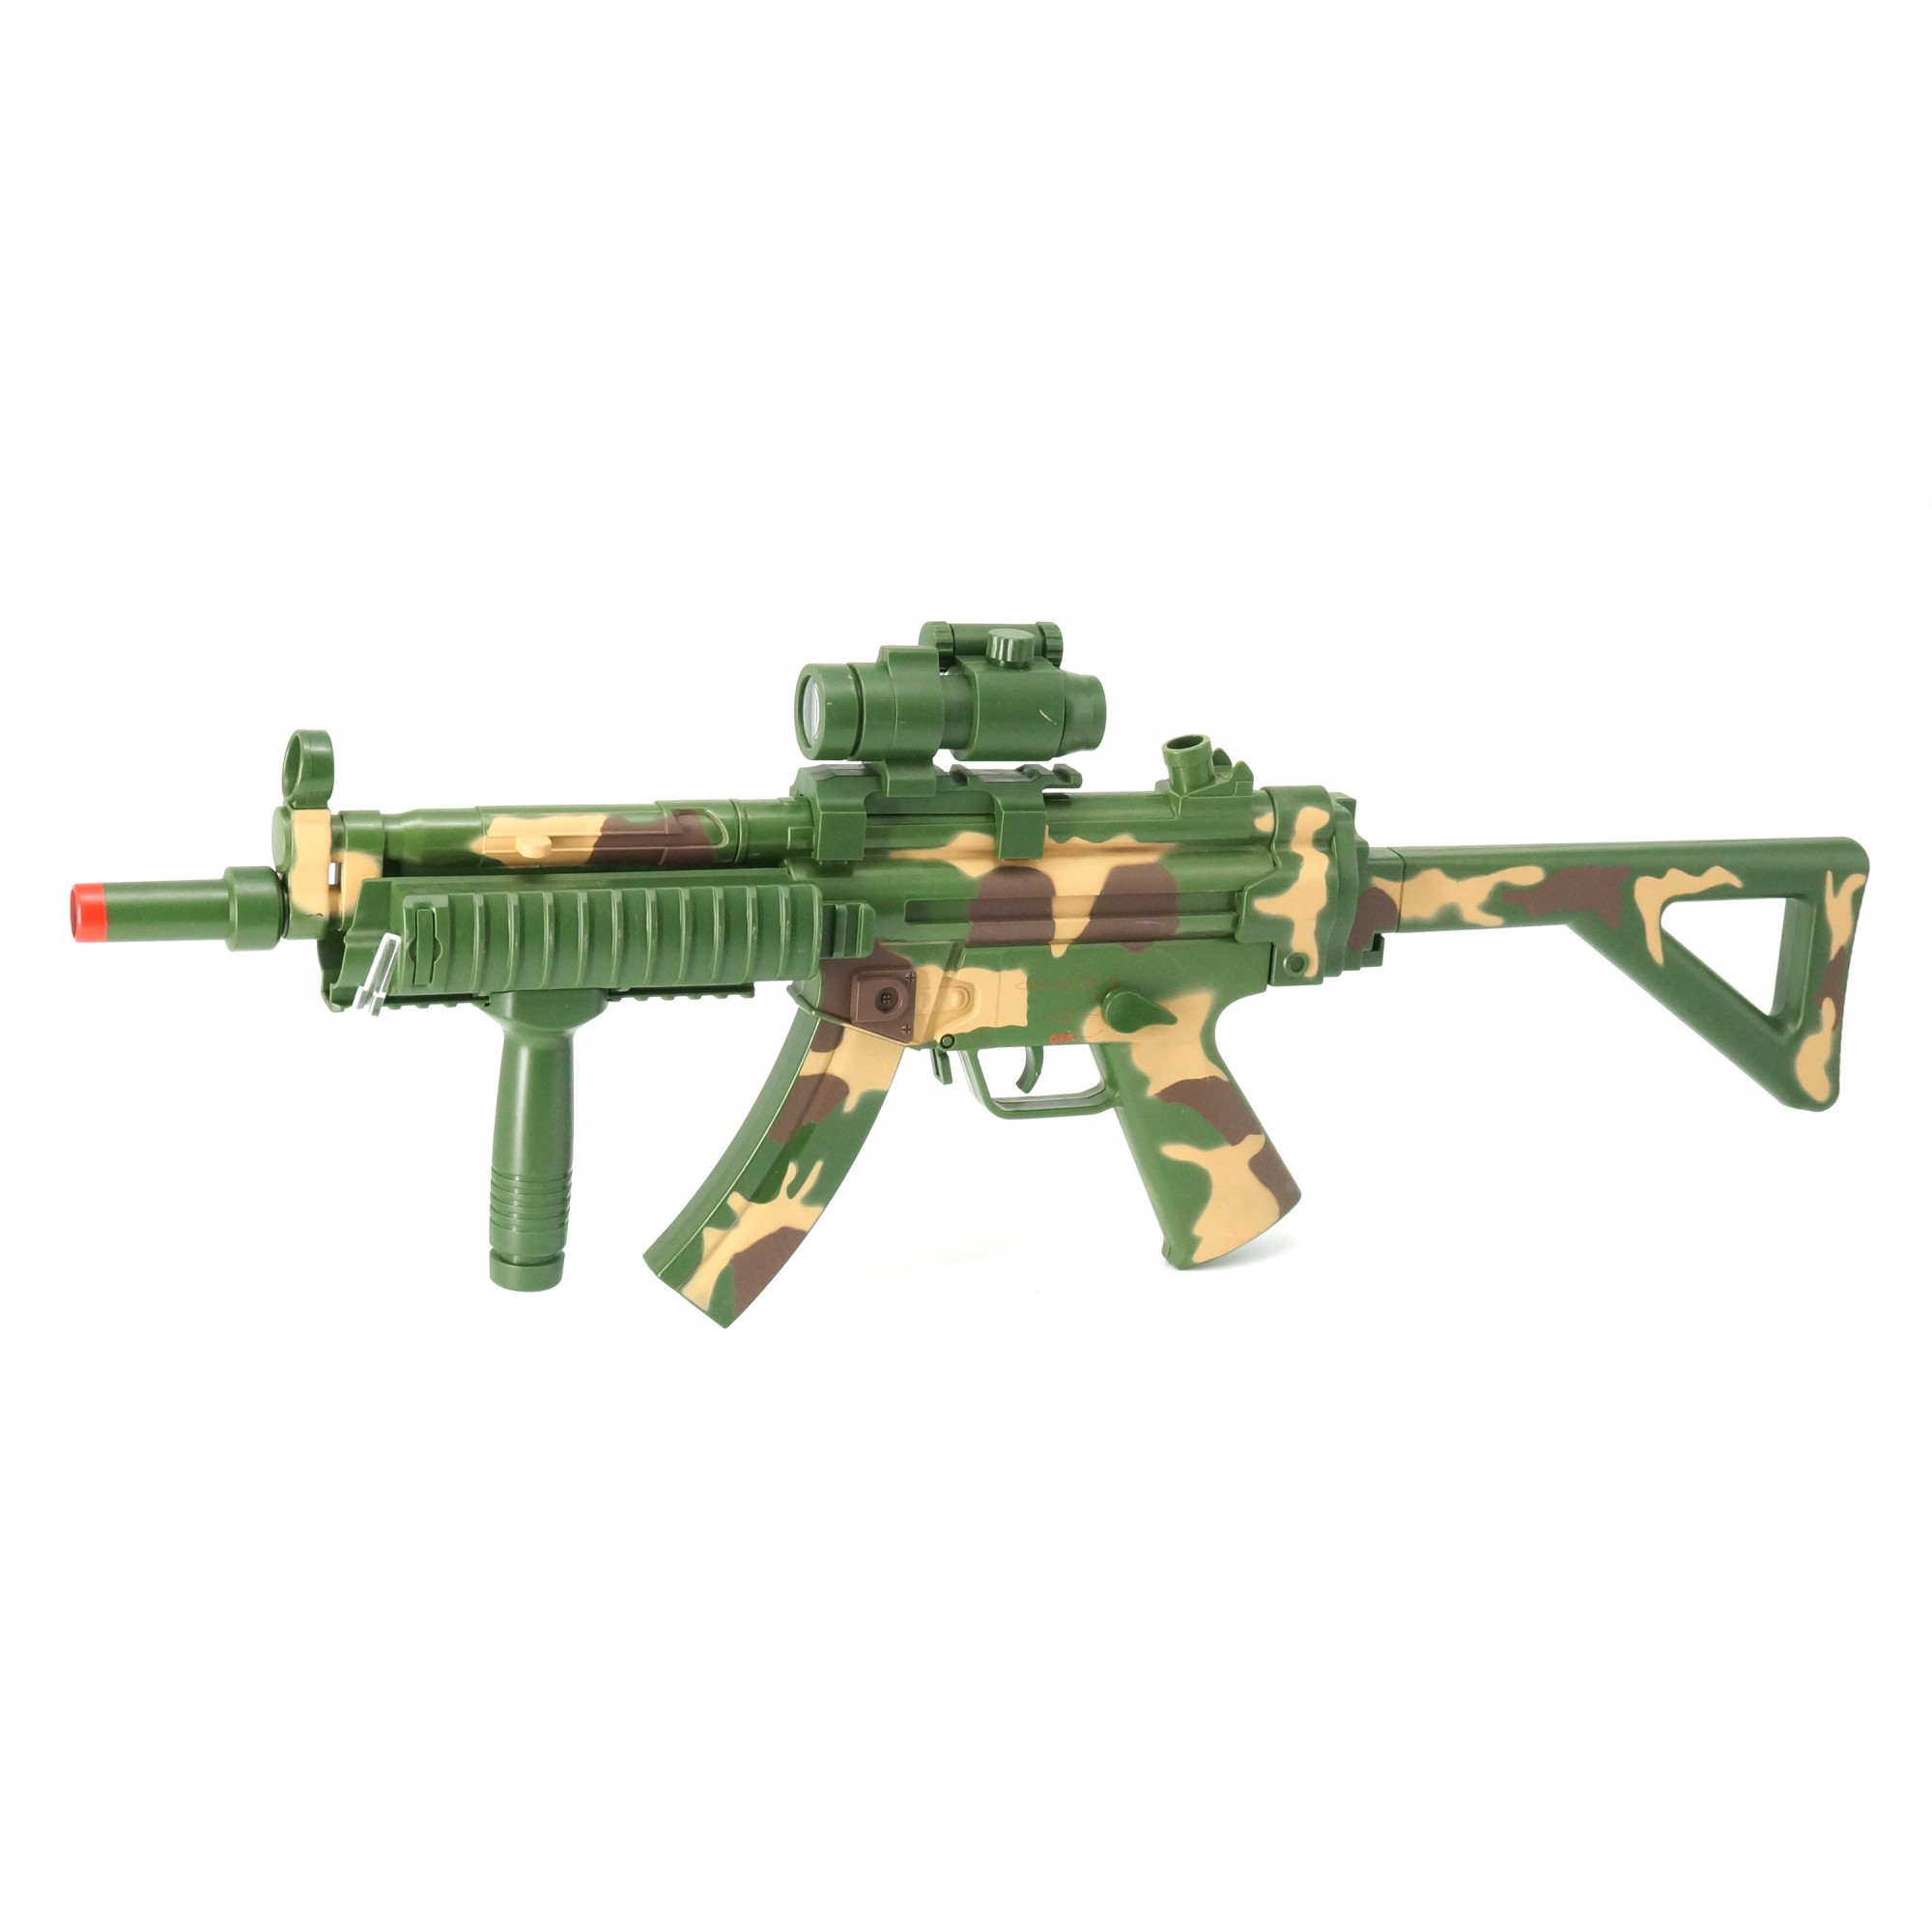 Combat MP5 RAS W/Light, Sound, Vibration & Viewer